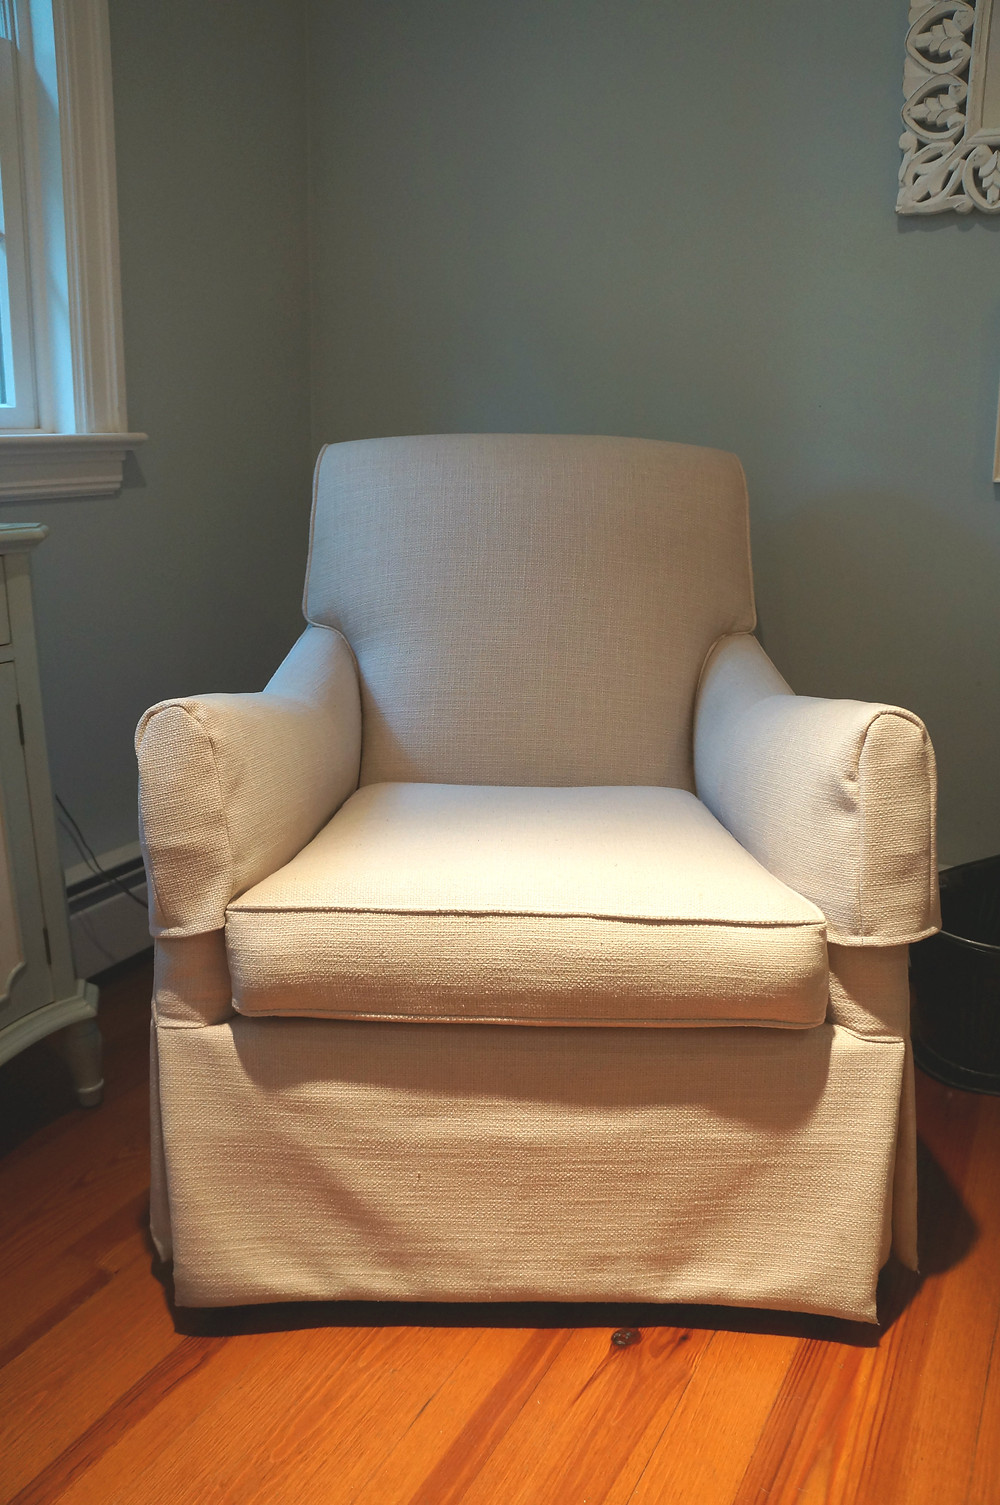 Chair with finished covers